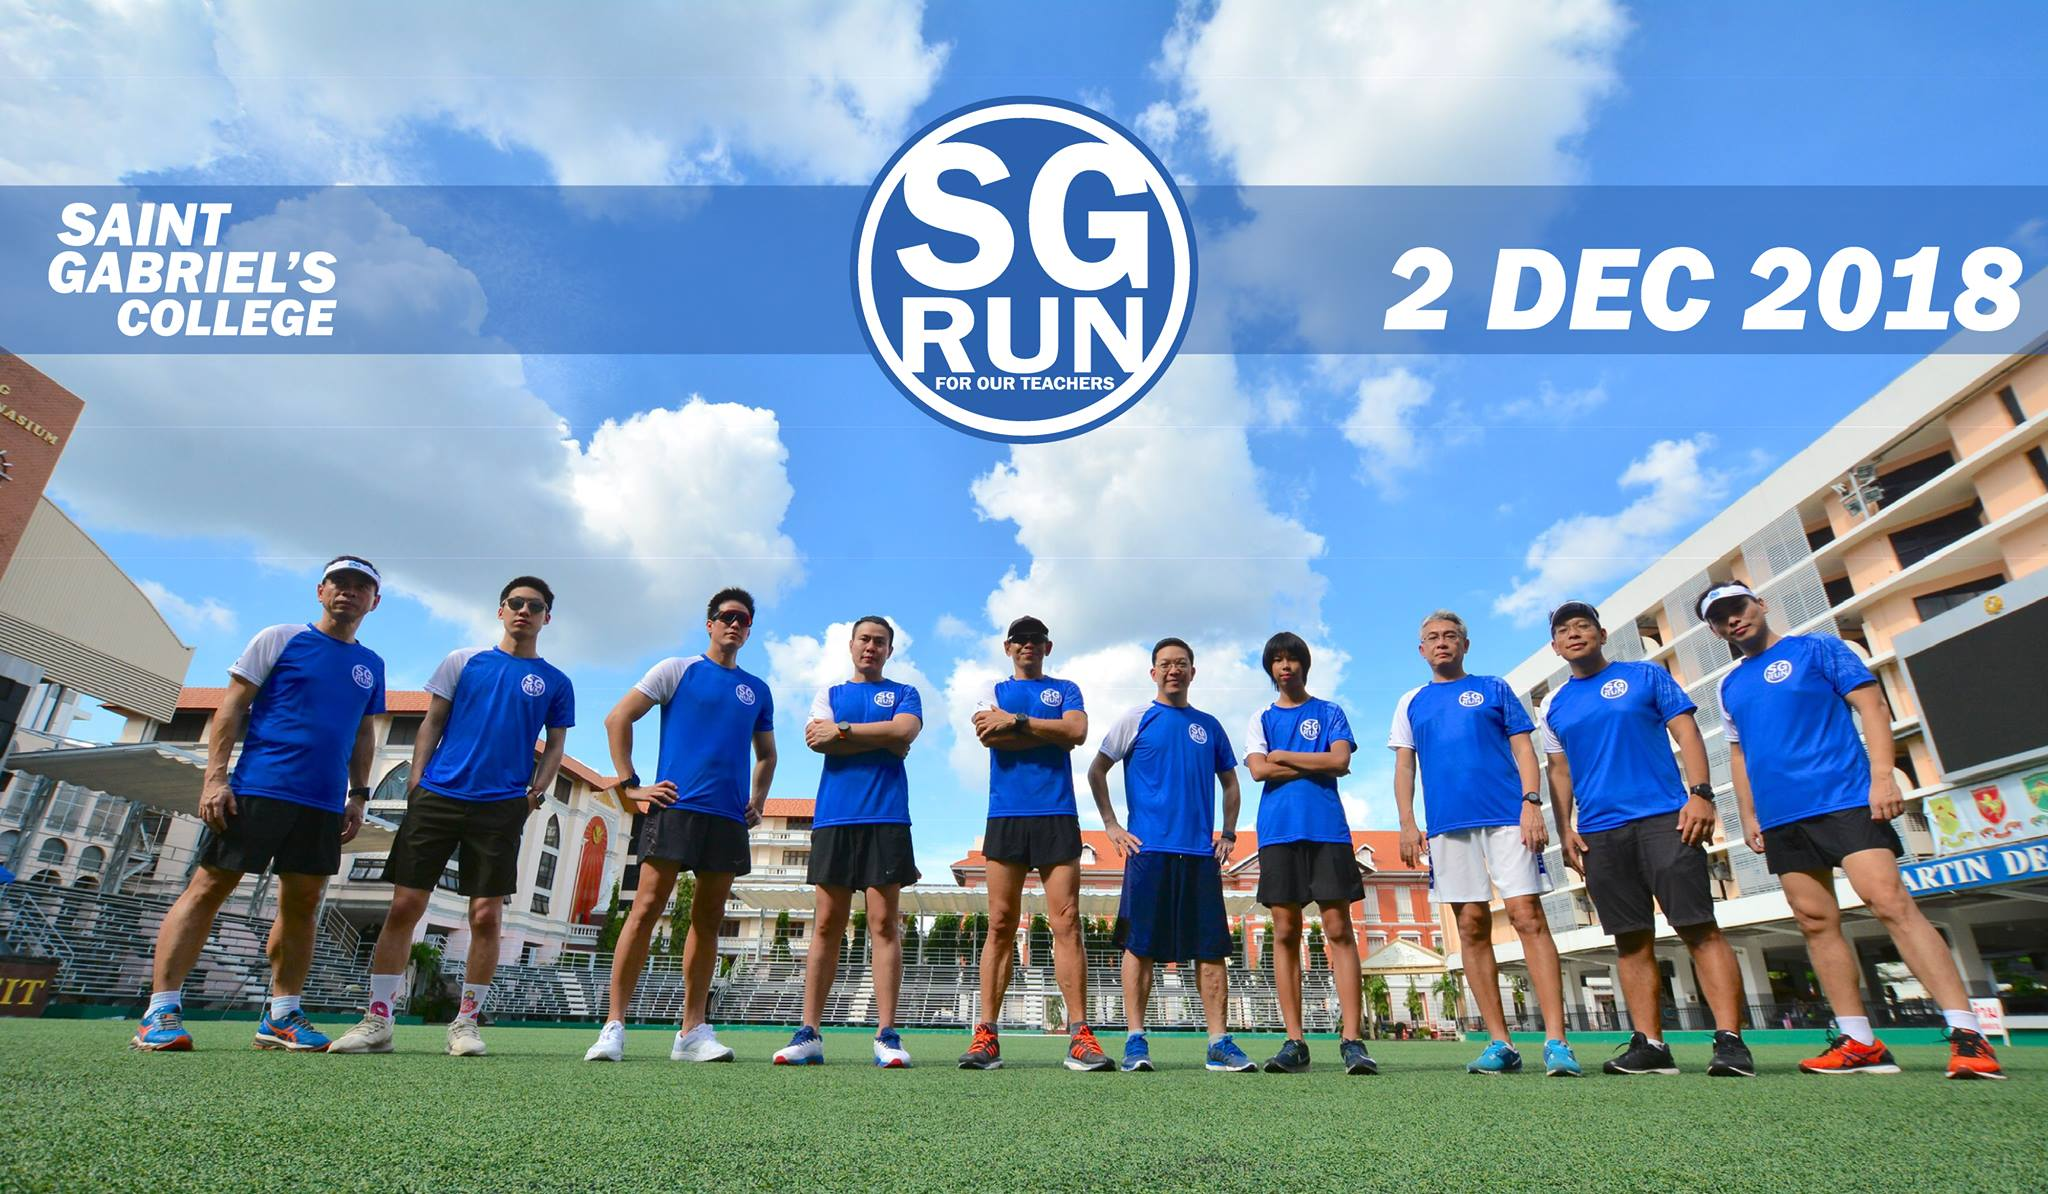 SG Run For Our Teachers 2018